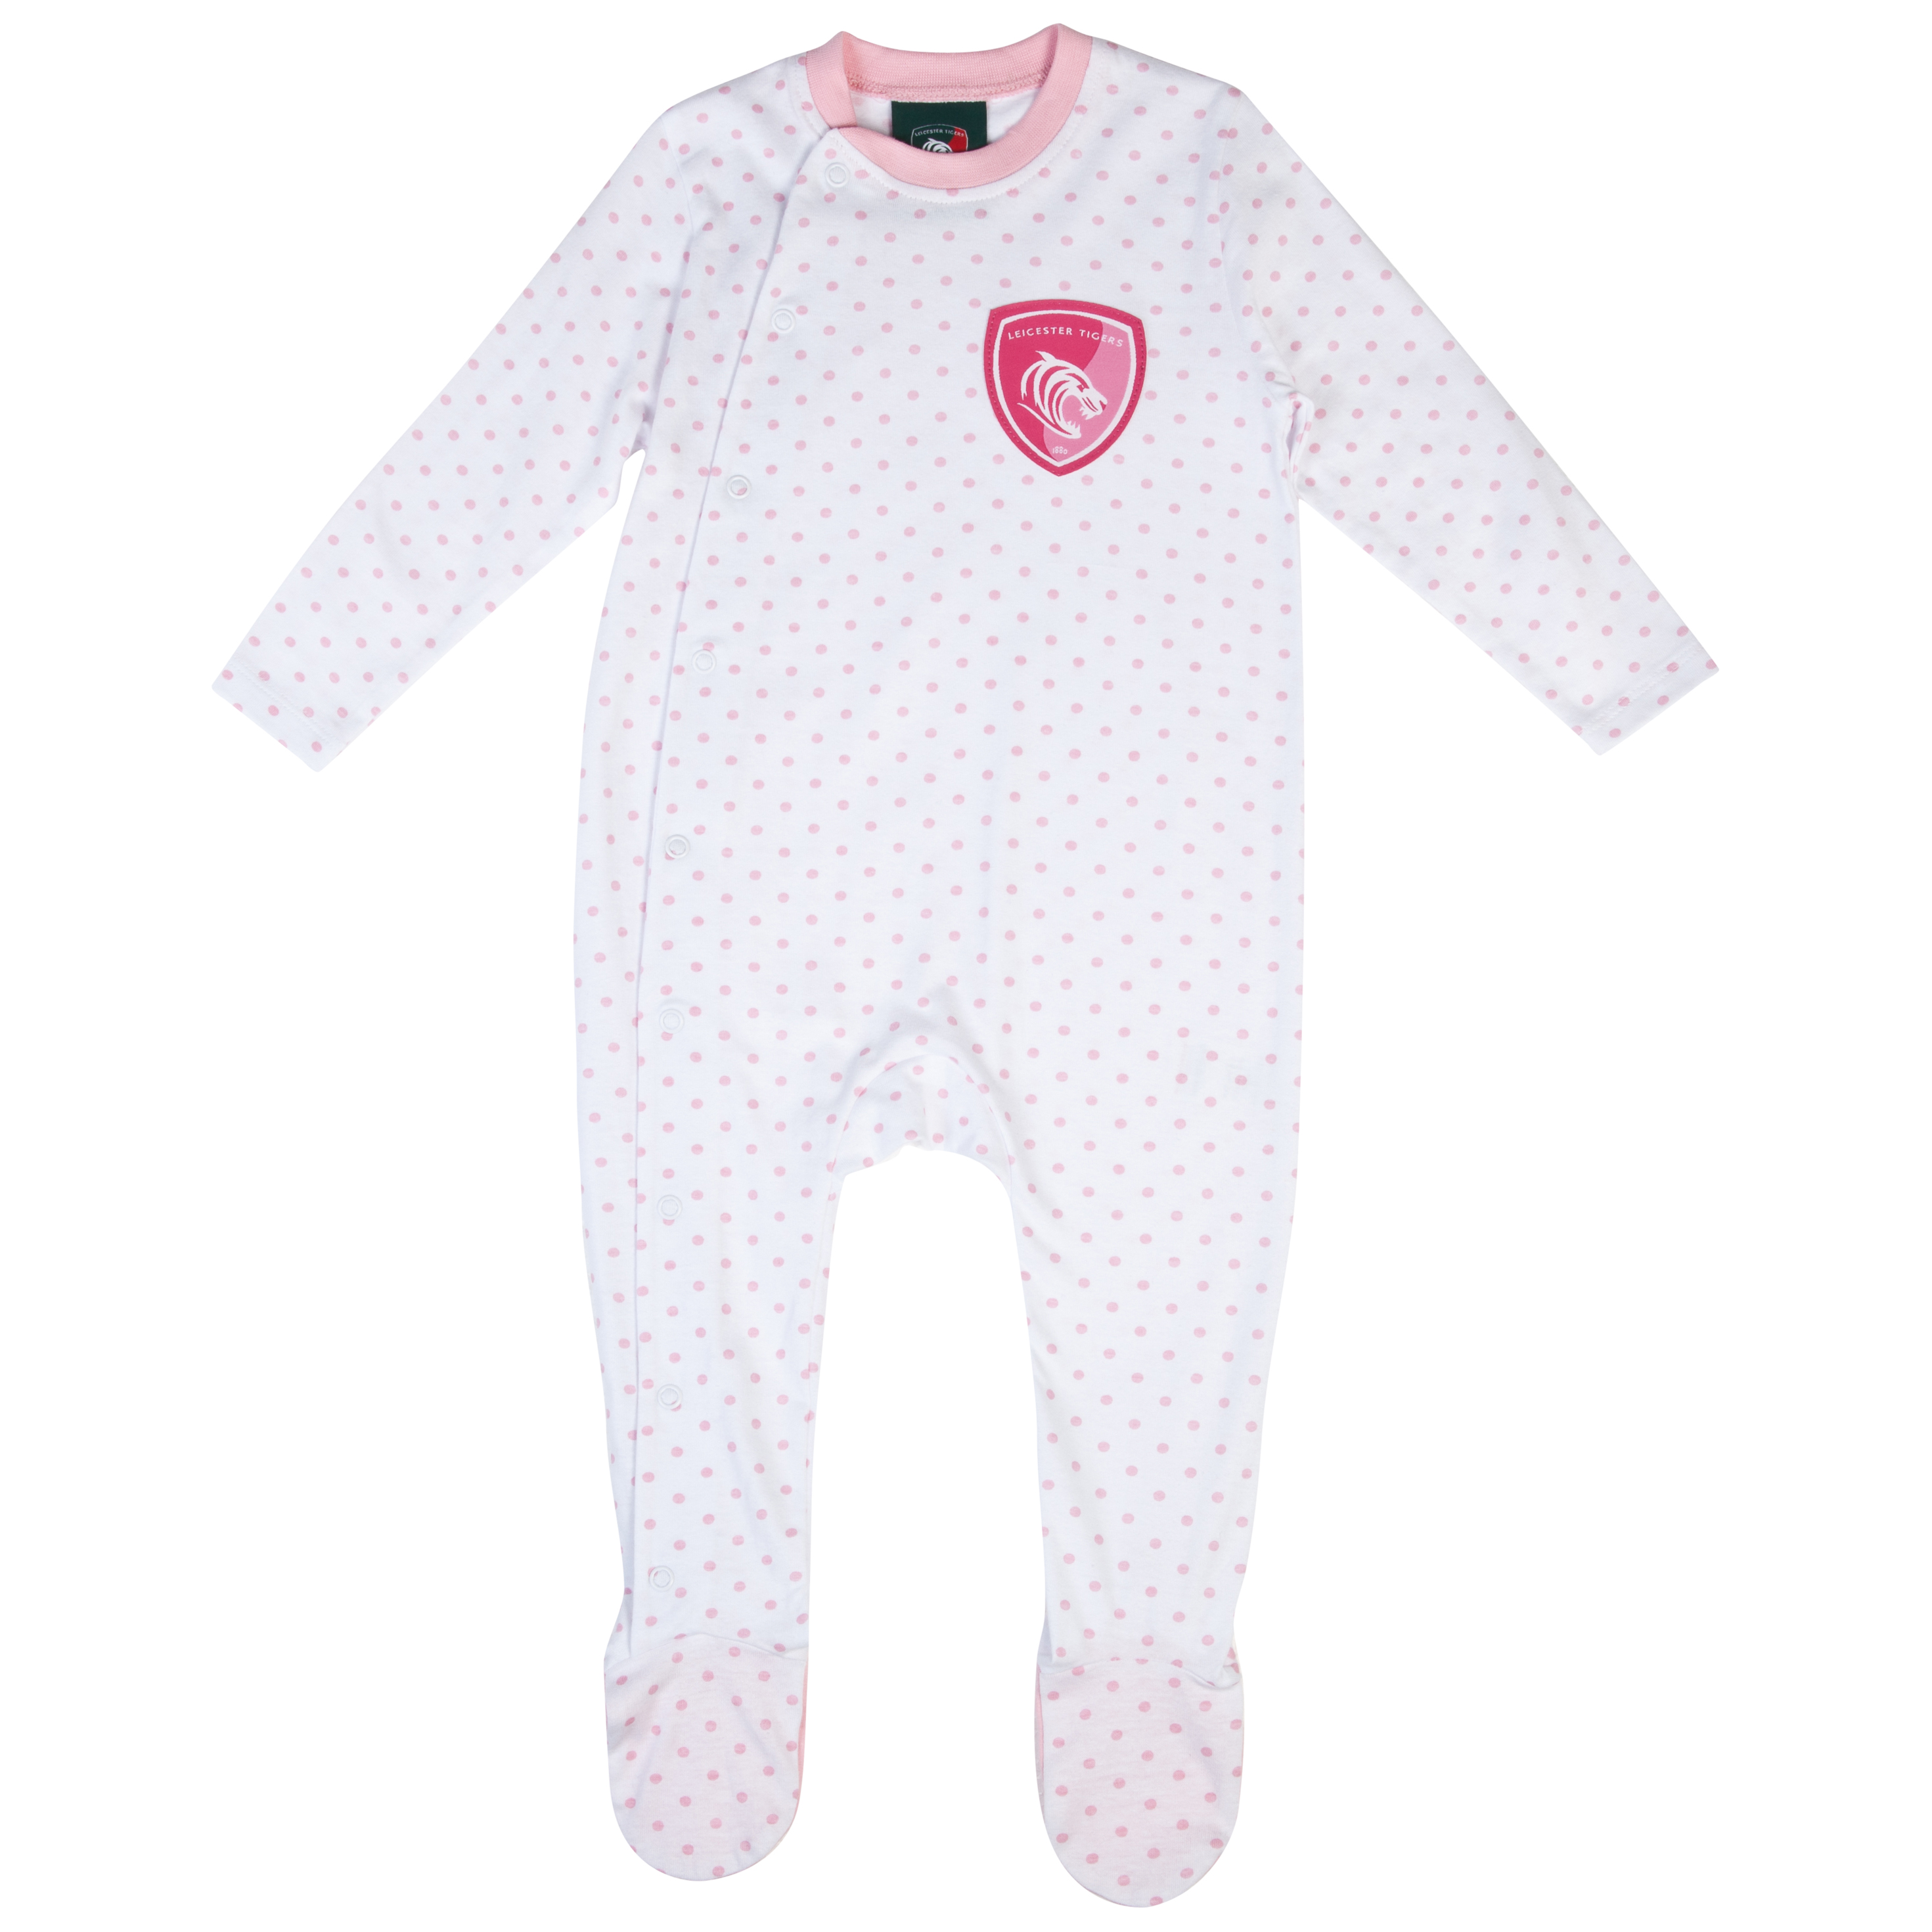 Leicester Tigers Dotty Sleepsuit - White/Pink - Baby